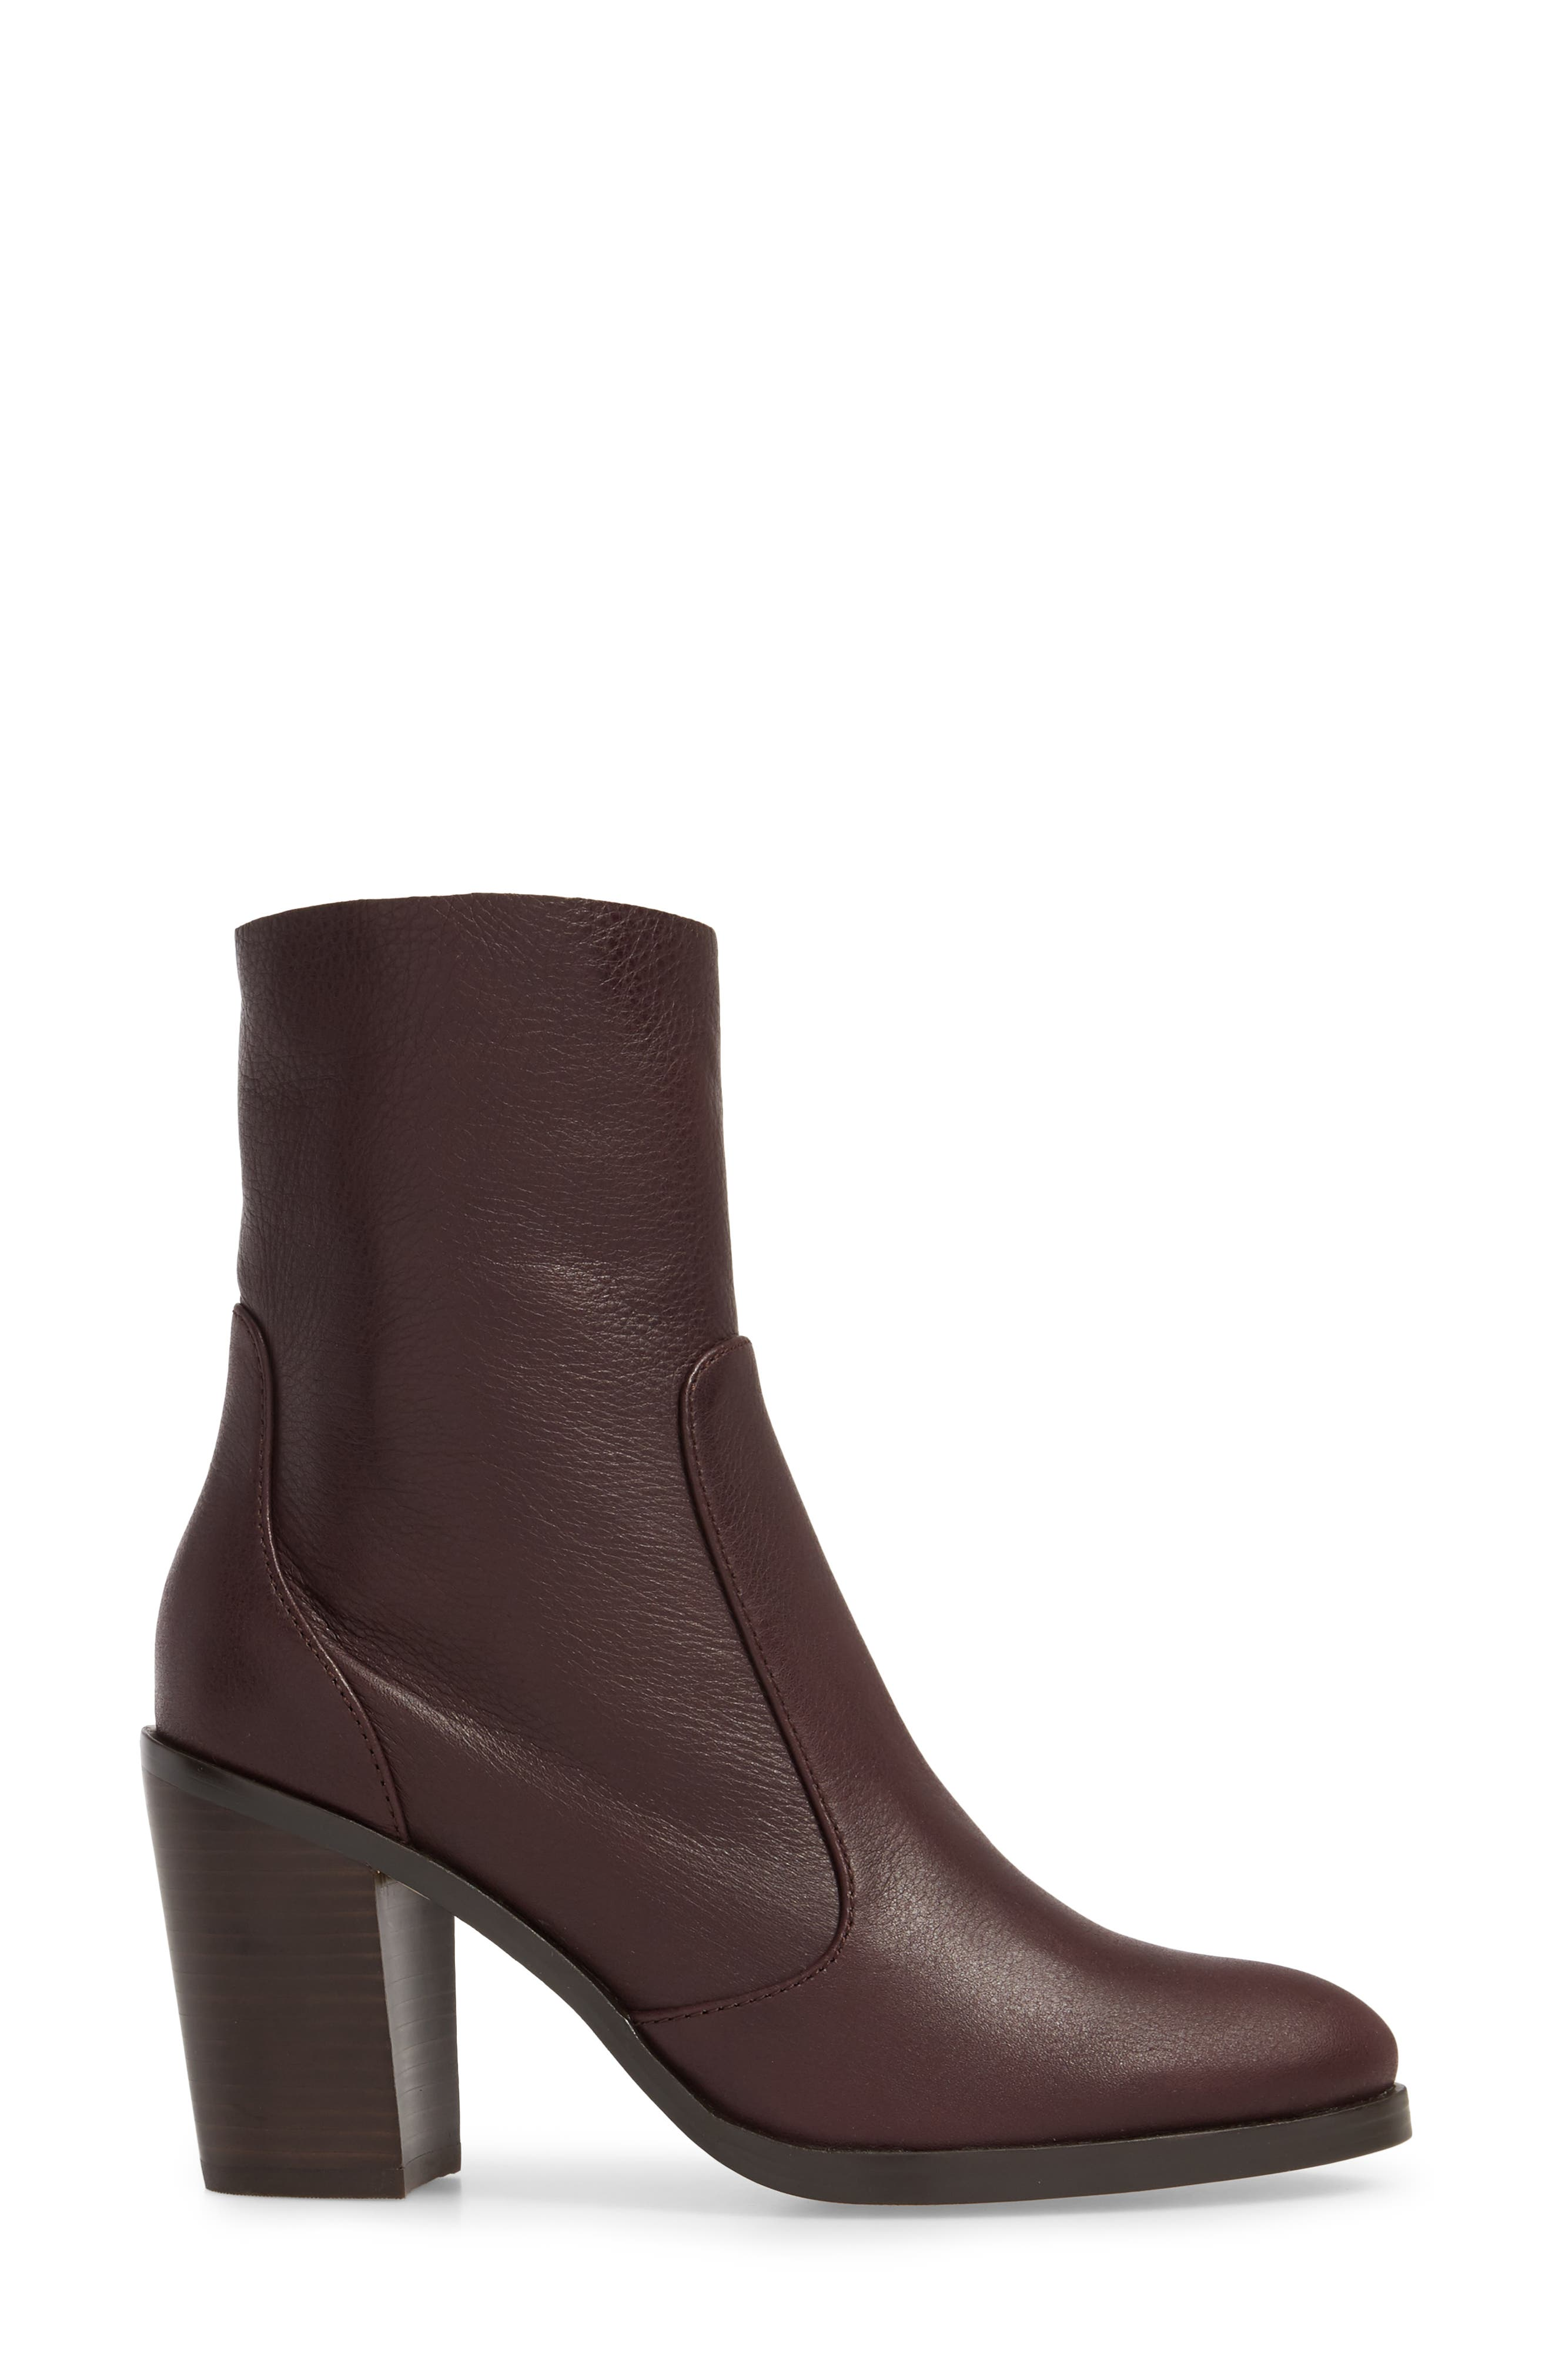 Roselyn Bootie,                             Alternate thumbnail 3, color,                             DEEP PLUM LEATHER